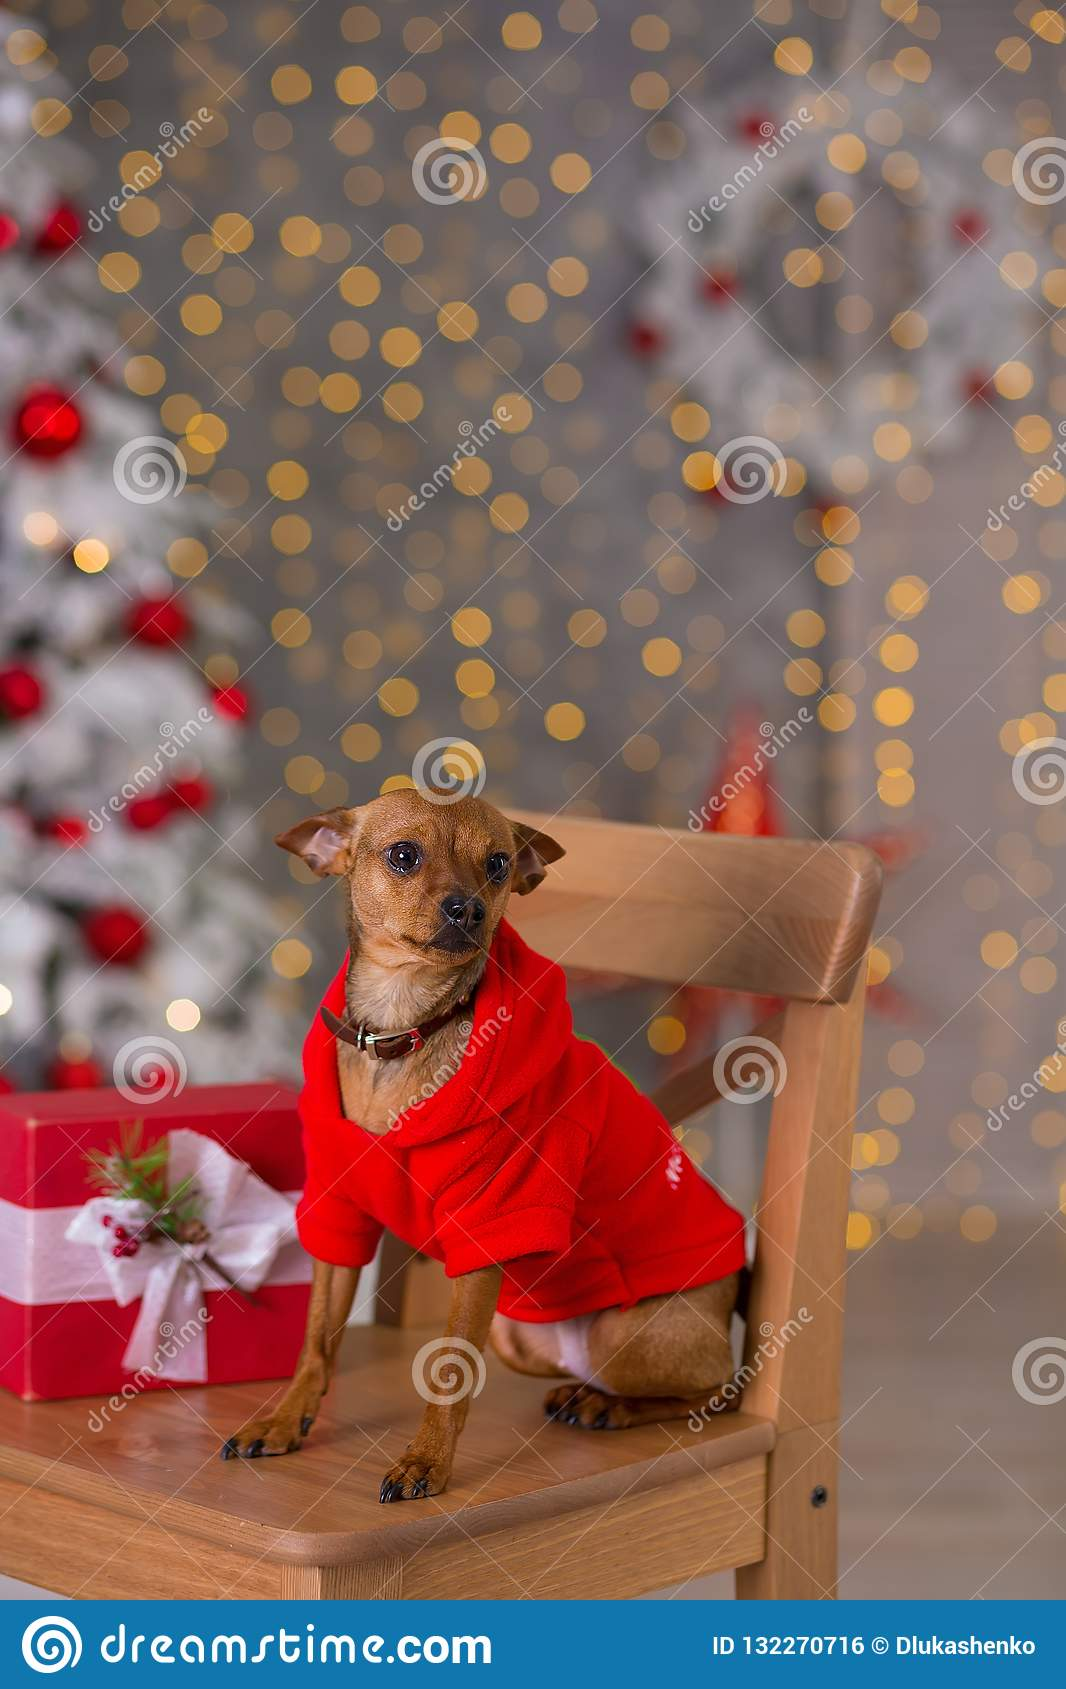 Happy New Year, Christmas, puppy dog. holidays and celebration, pet in the room the Christmas tree. Dog in Santa Claus dress